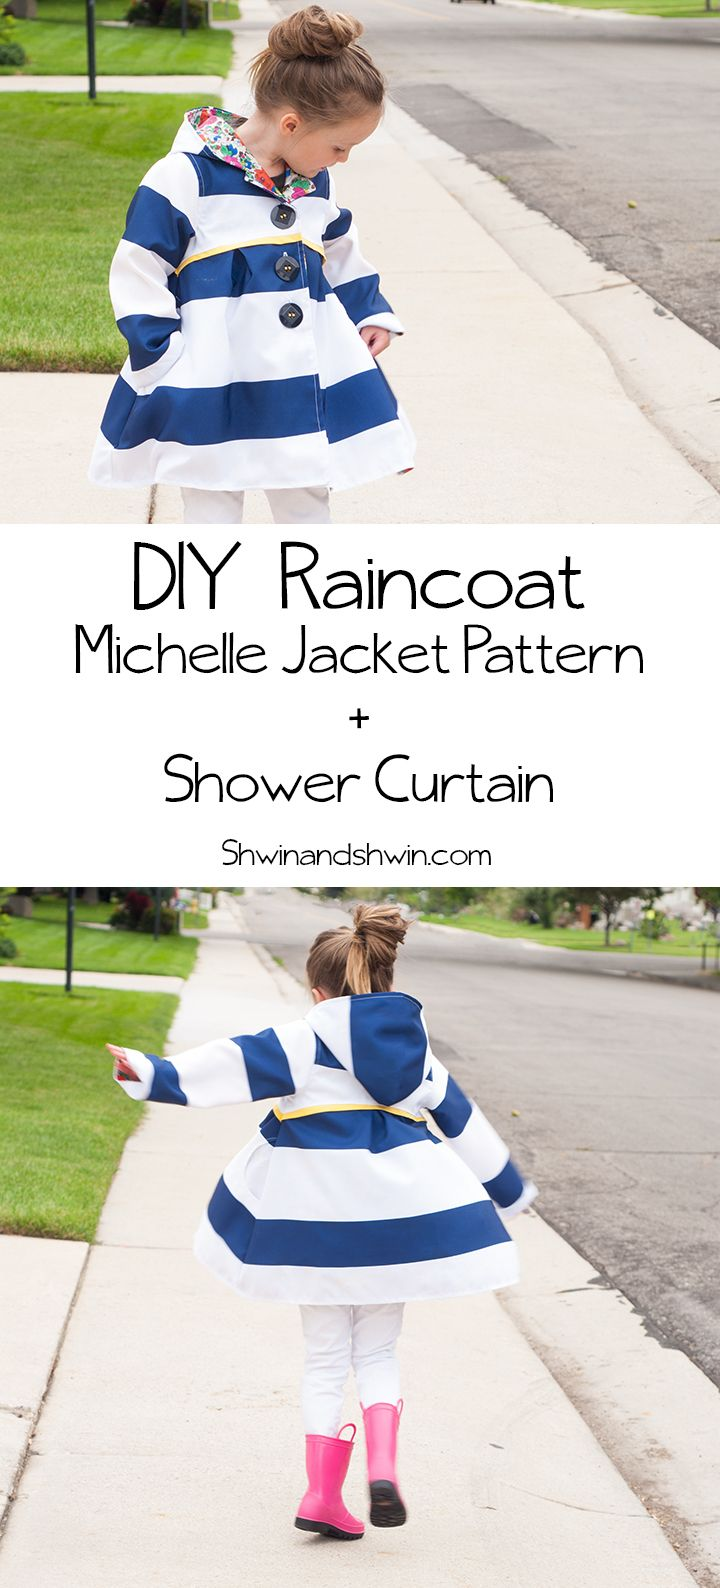 DIY Raincoat || Michelle Jacket || Shwin&Shwin. WHAT A SMART IDEA- USING SHOWER CURTAINS AS RAINCOAT MATERIAL